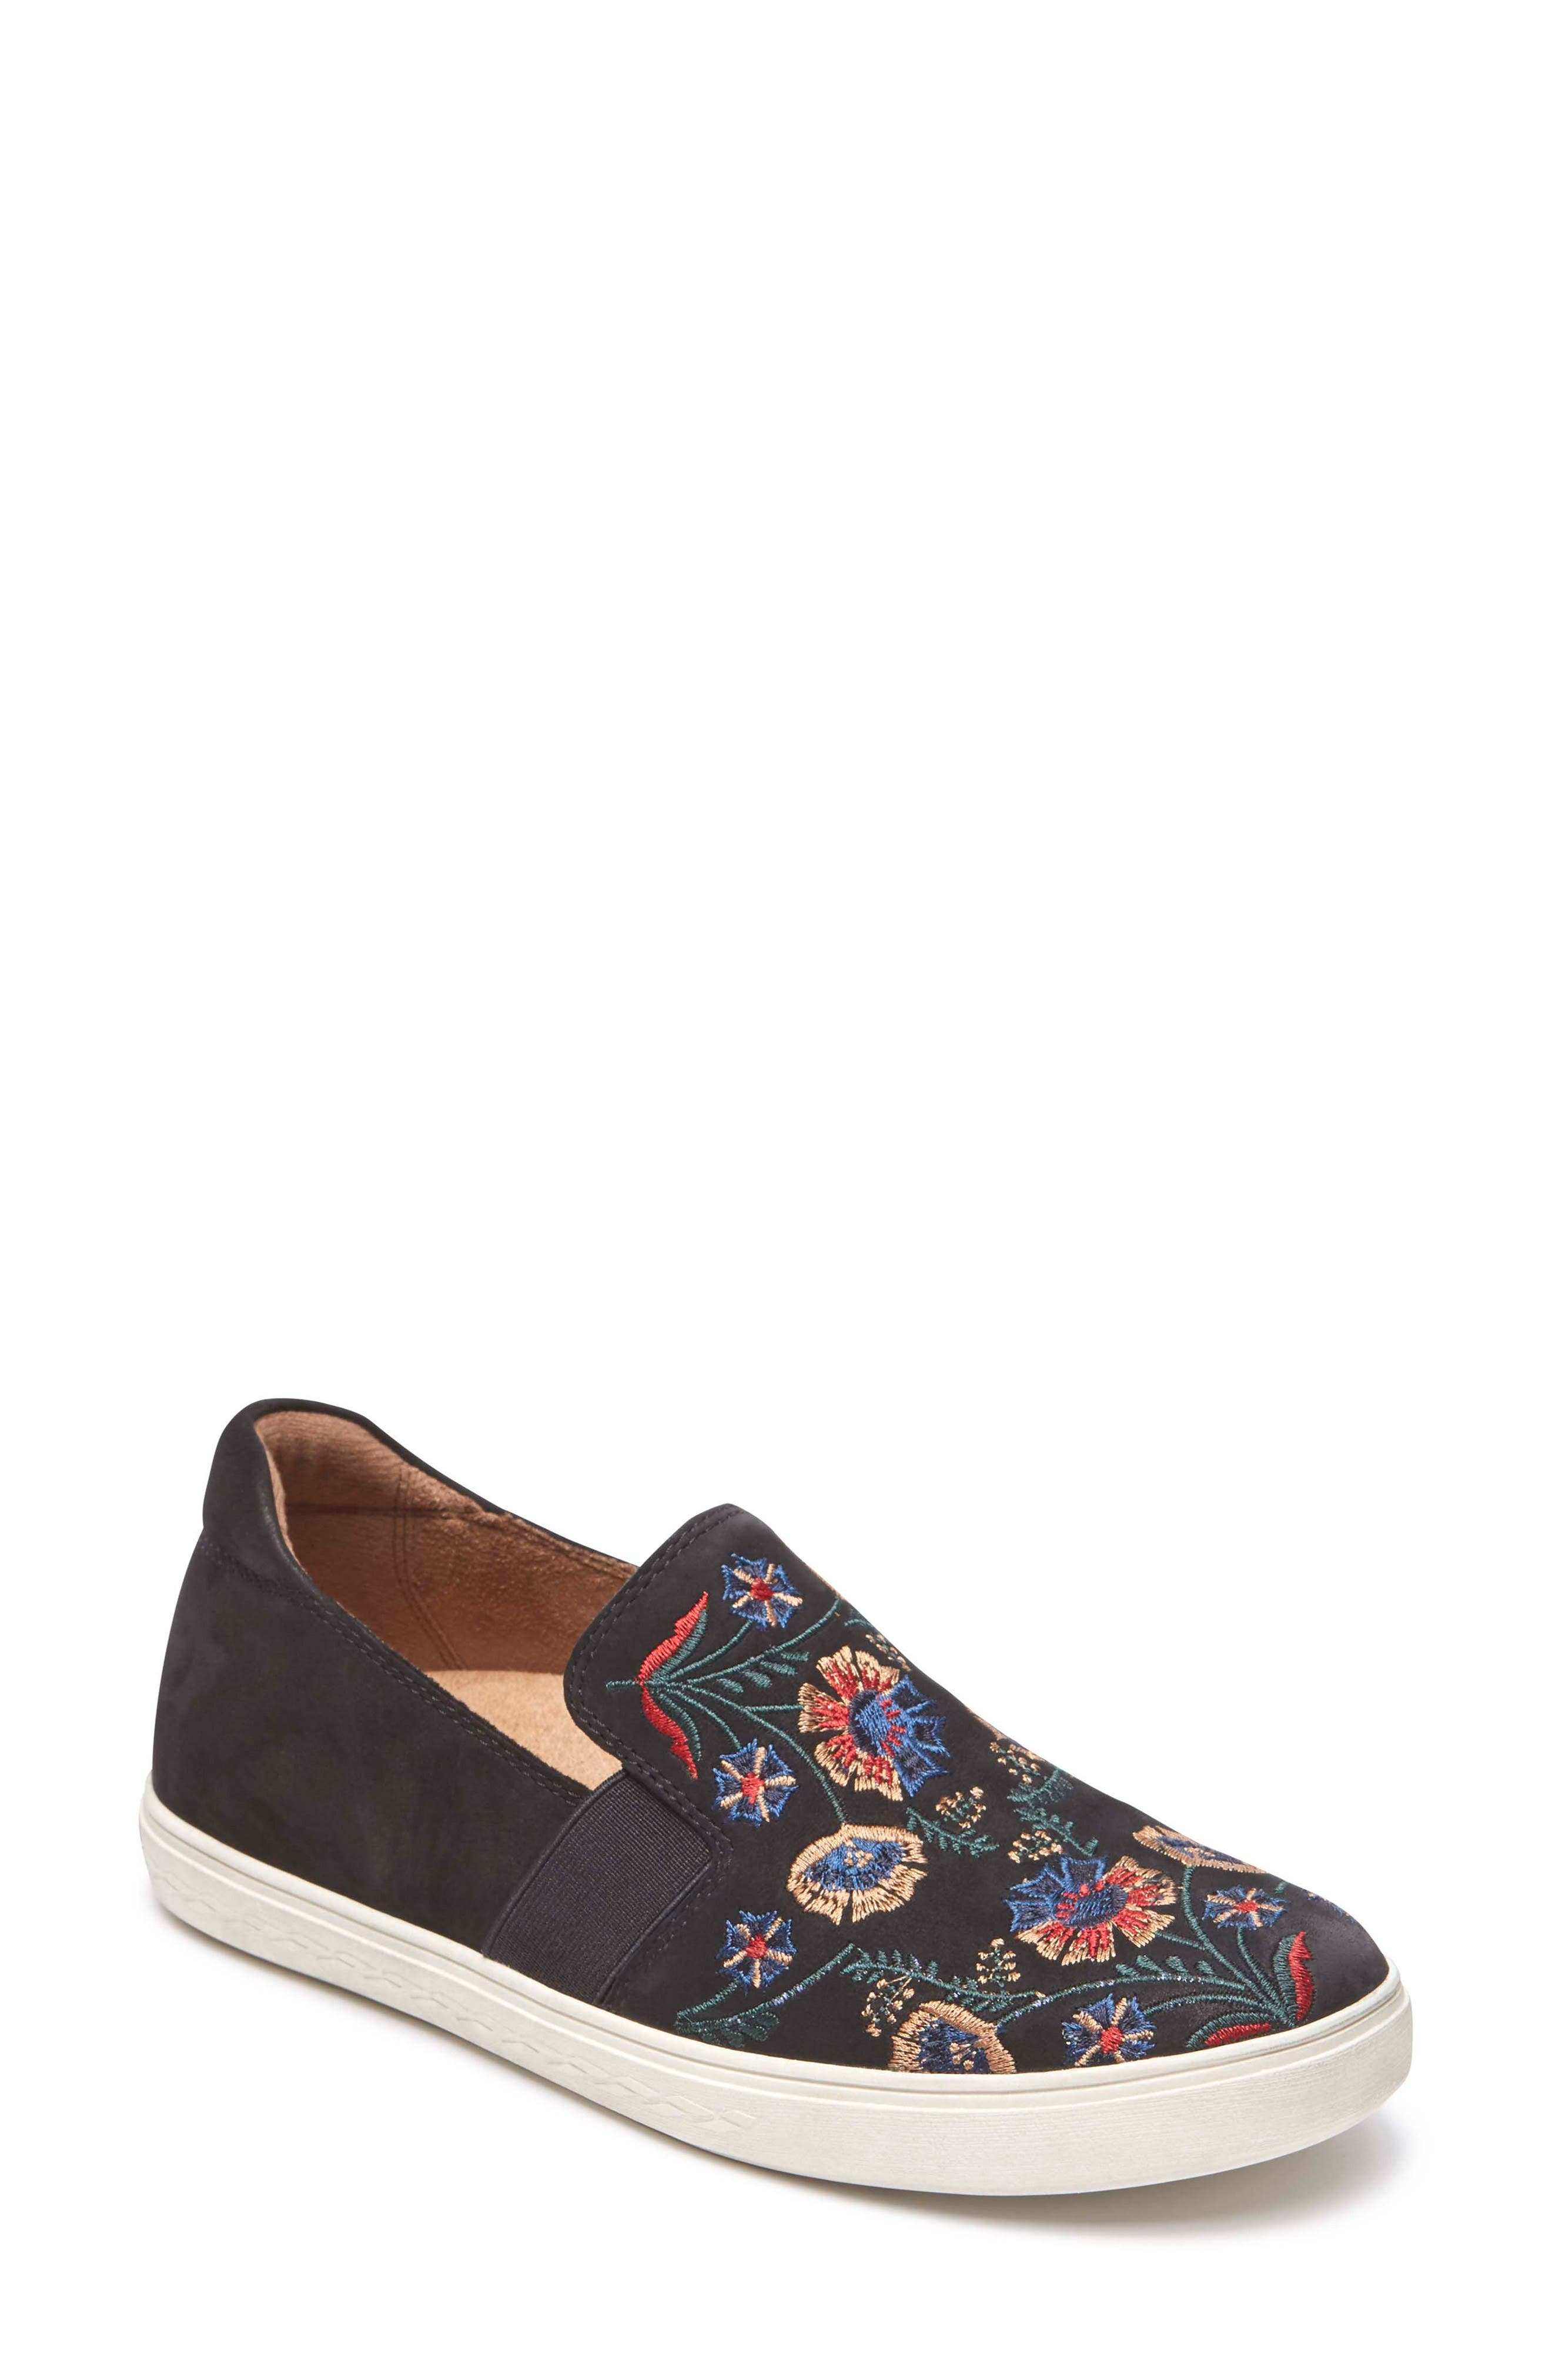 Cobb Hill Flower Embroidered Slip-On Sneaker,                         Main,                         color, BLACK NUBUCK